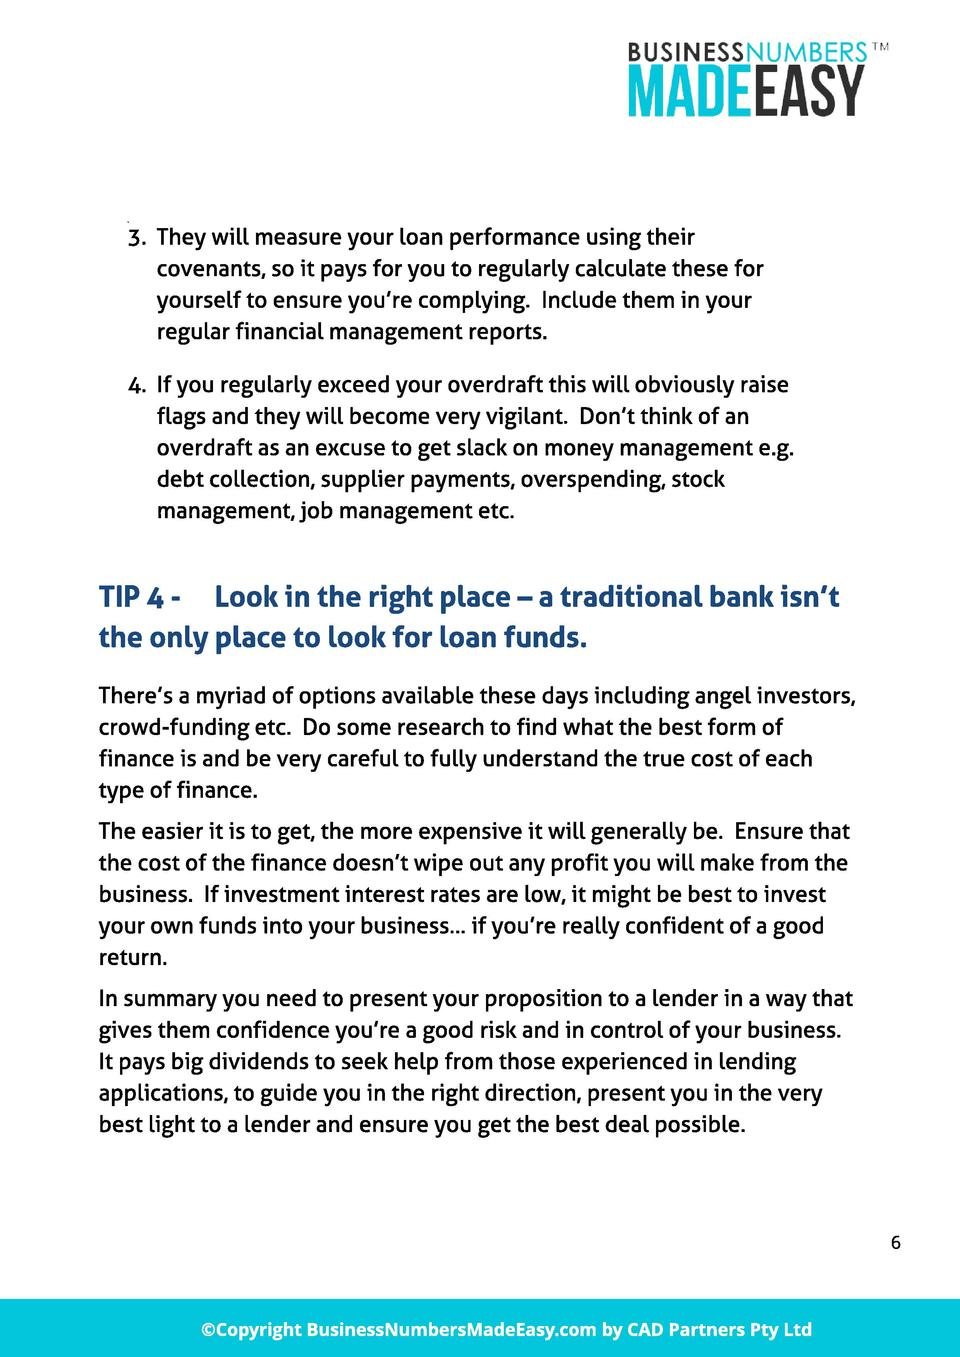 1.  3. They will measure your loan performance using their covenants, so it pays for you to regularly calculate these for ...